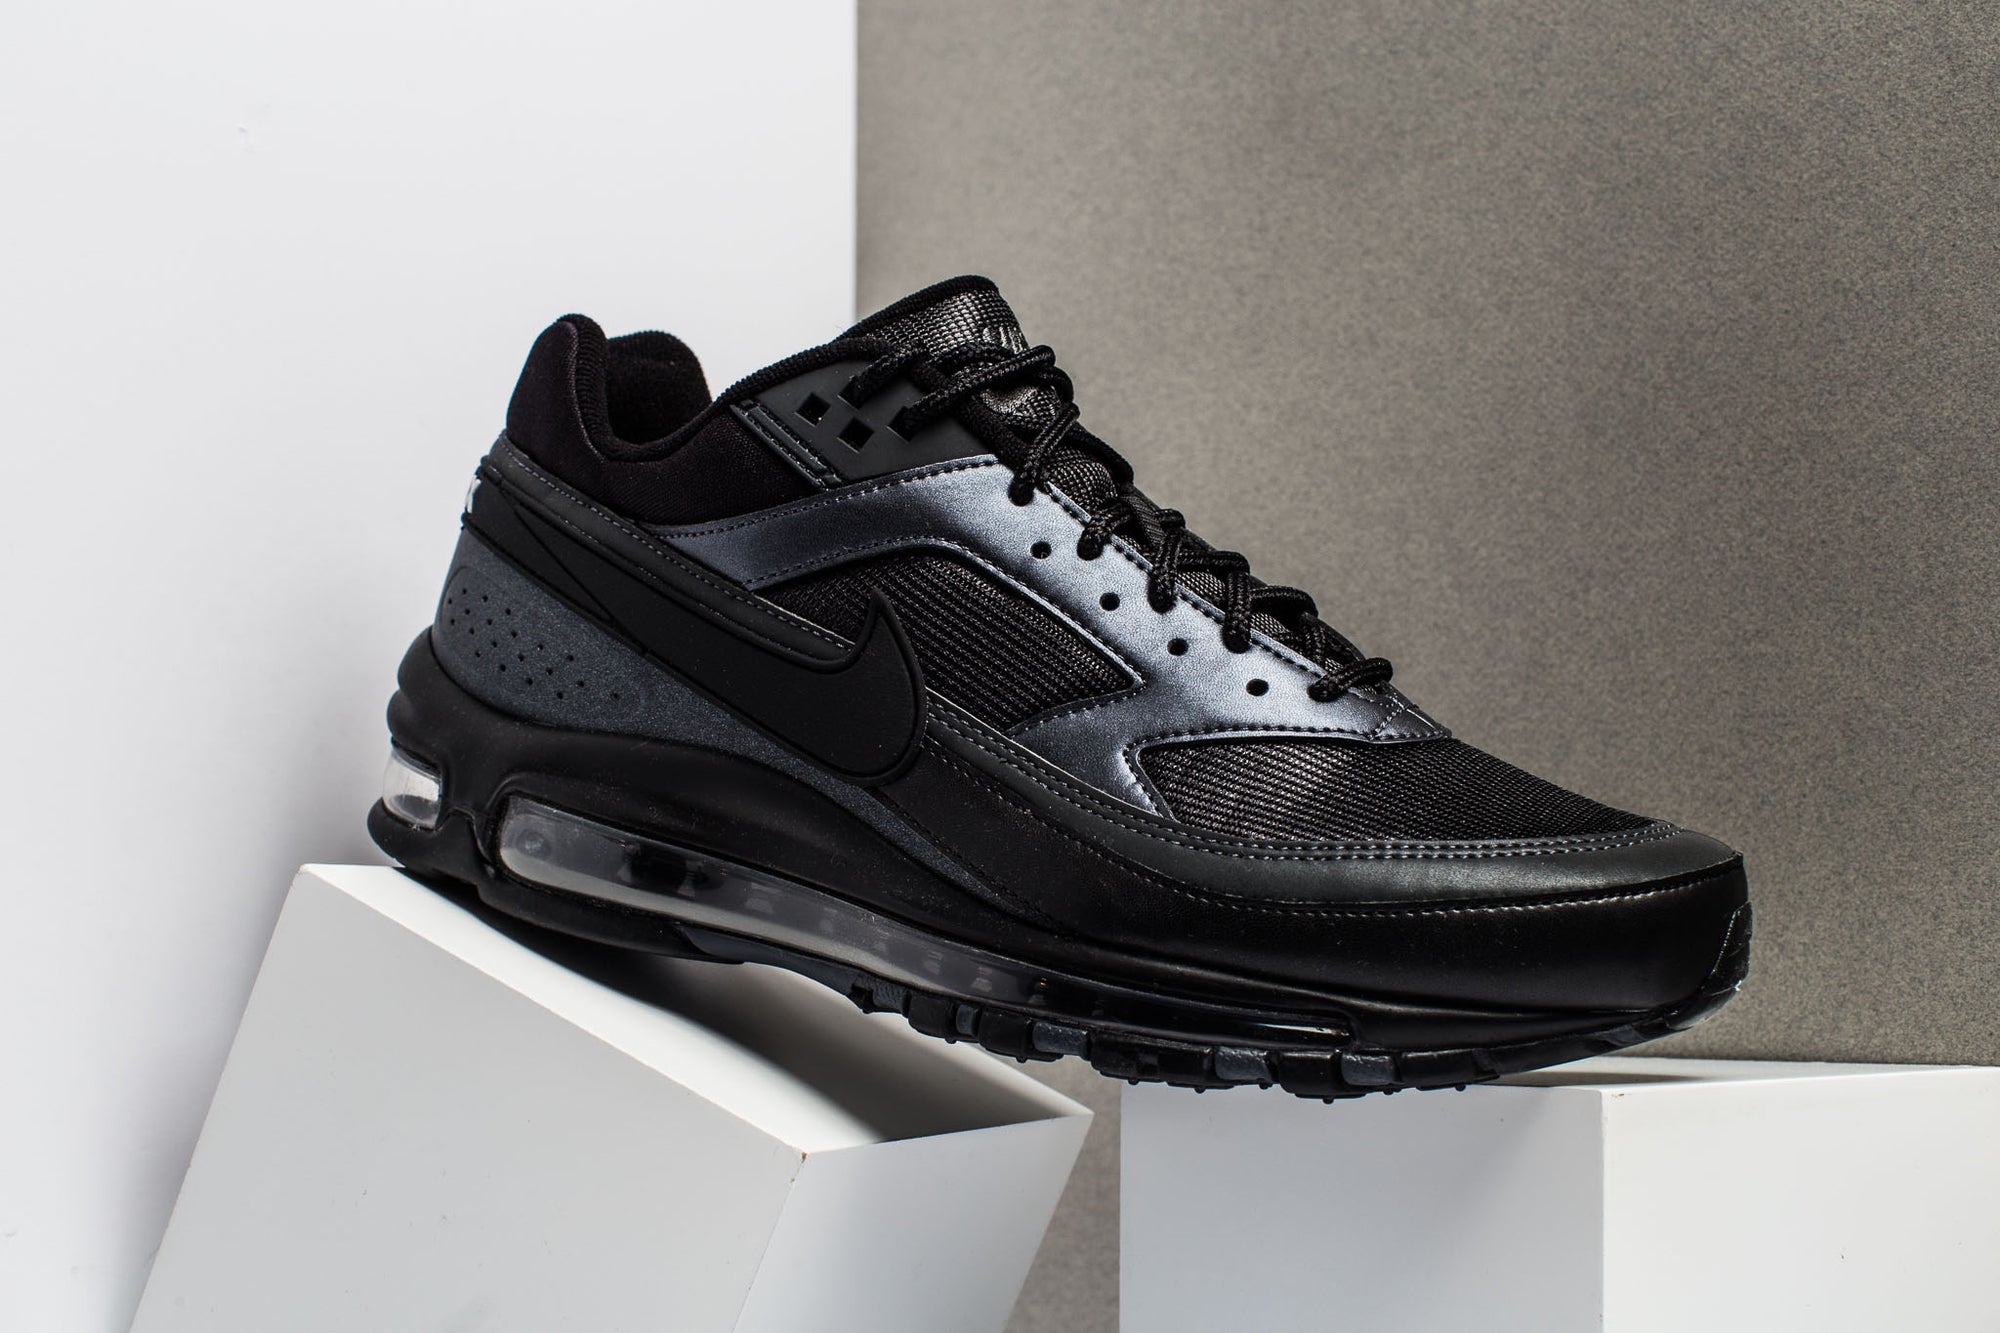 NIKE AIR MAX 97 BW Oneness Boutique